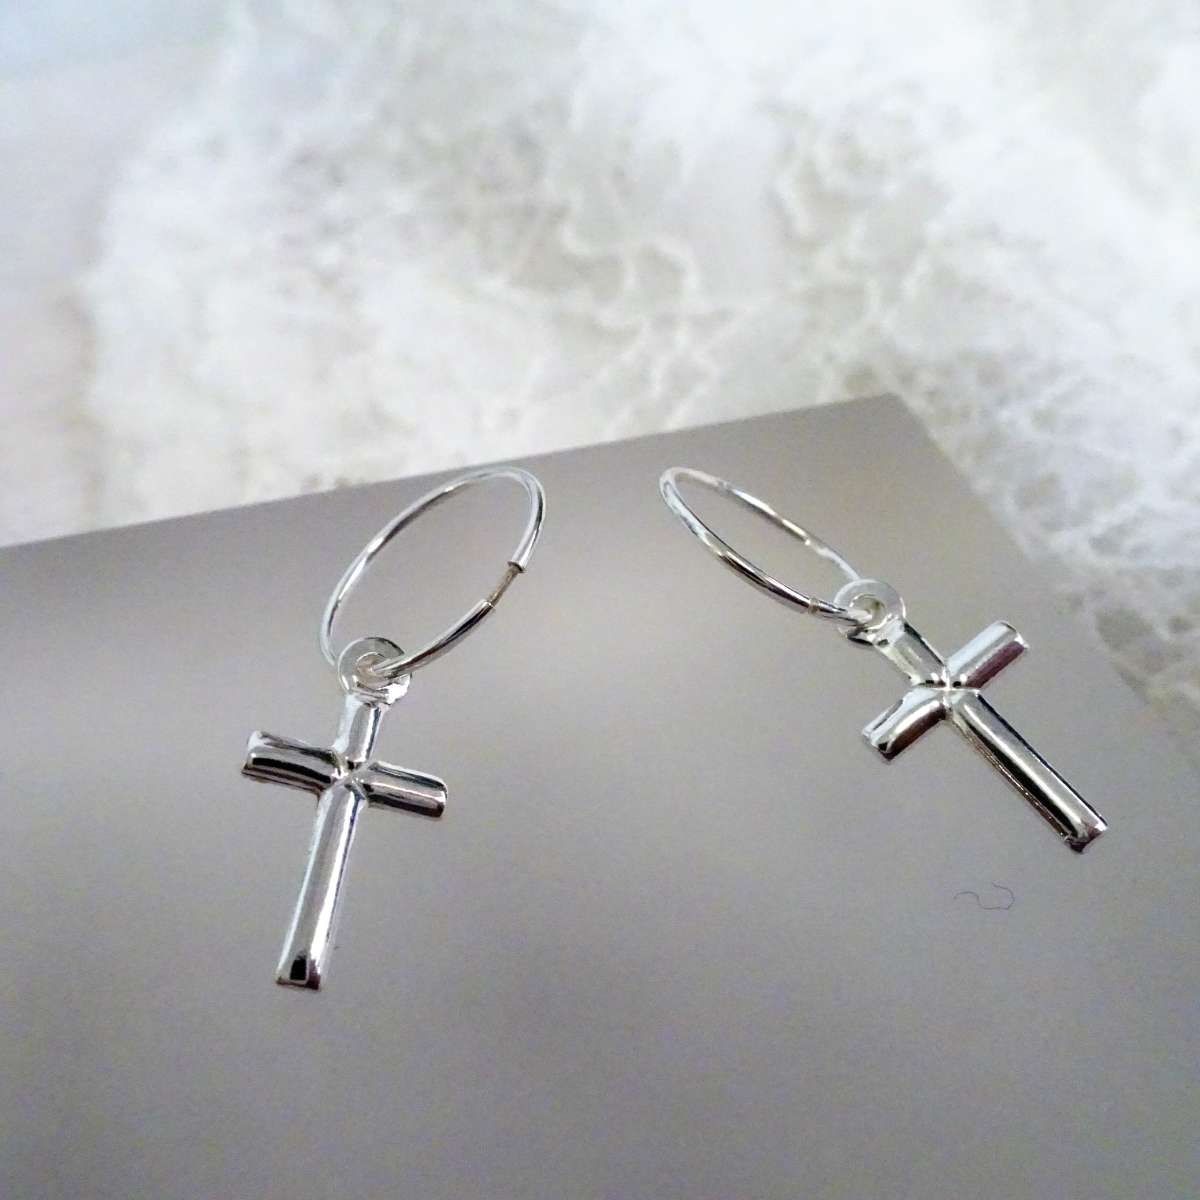 Alterative image for Sterling Silver Plain Cross 12 - 22mm Sleeper Hoop Earrings